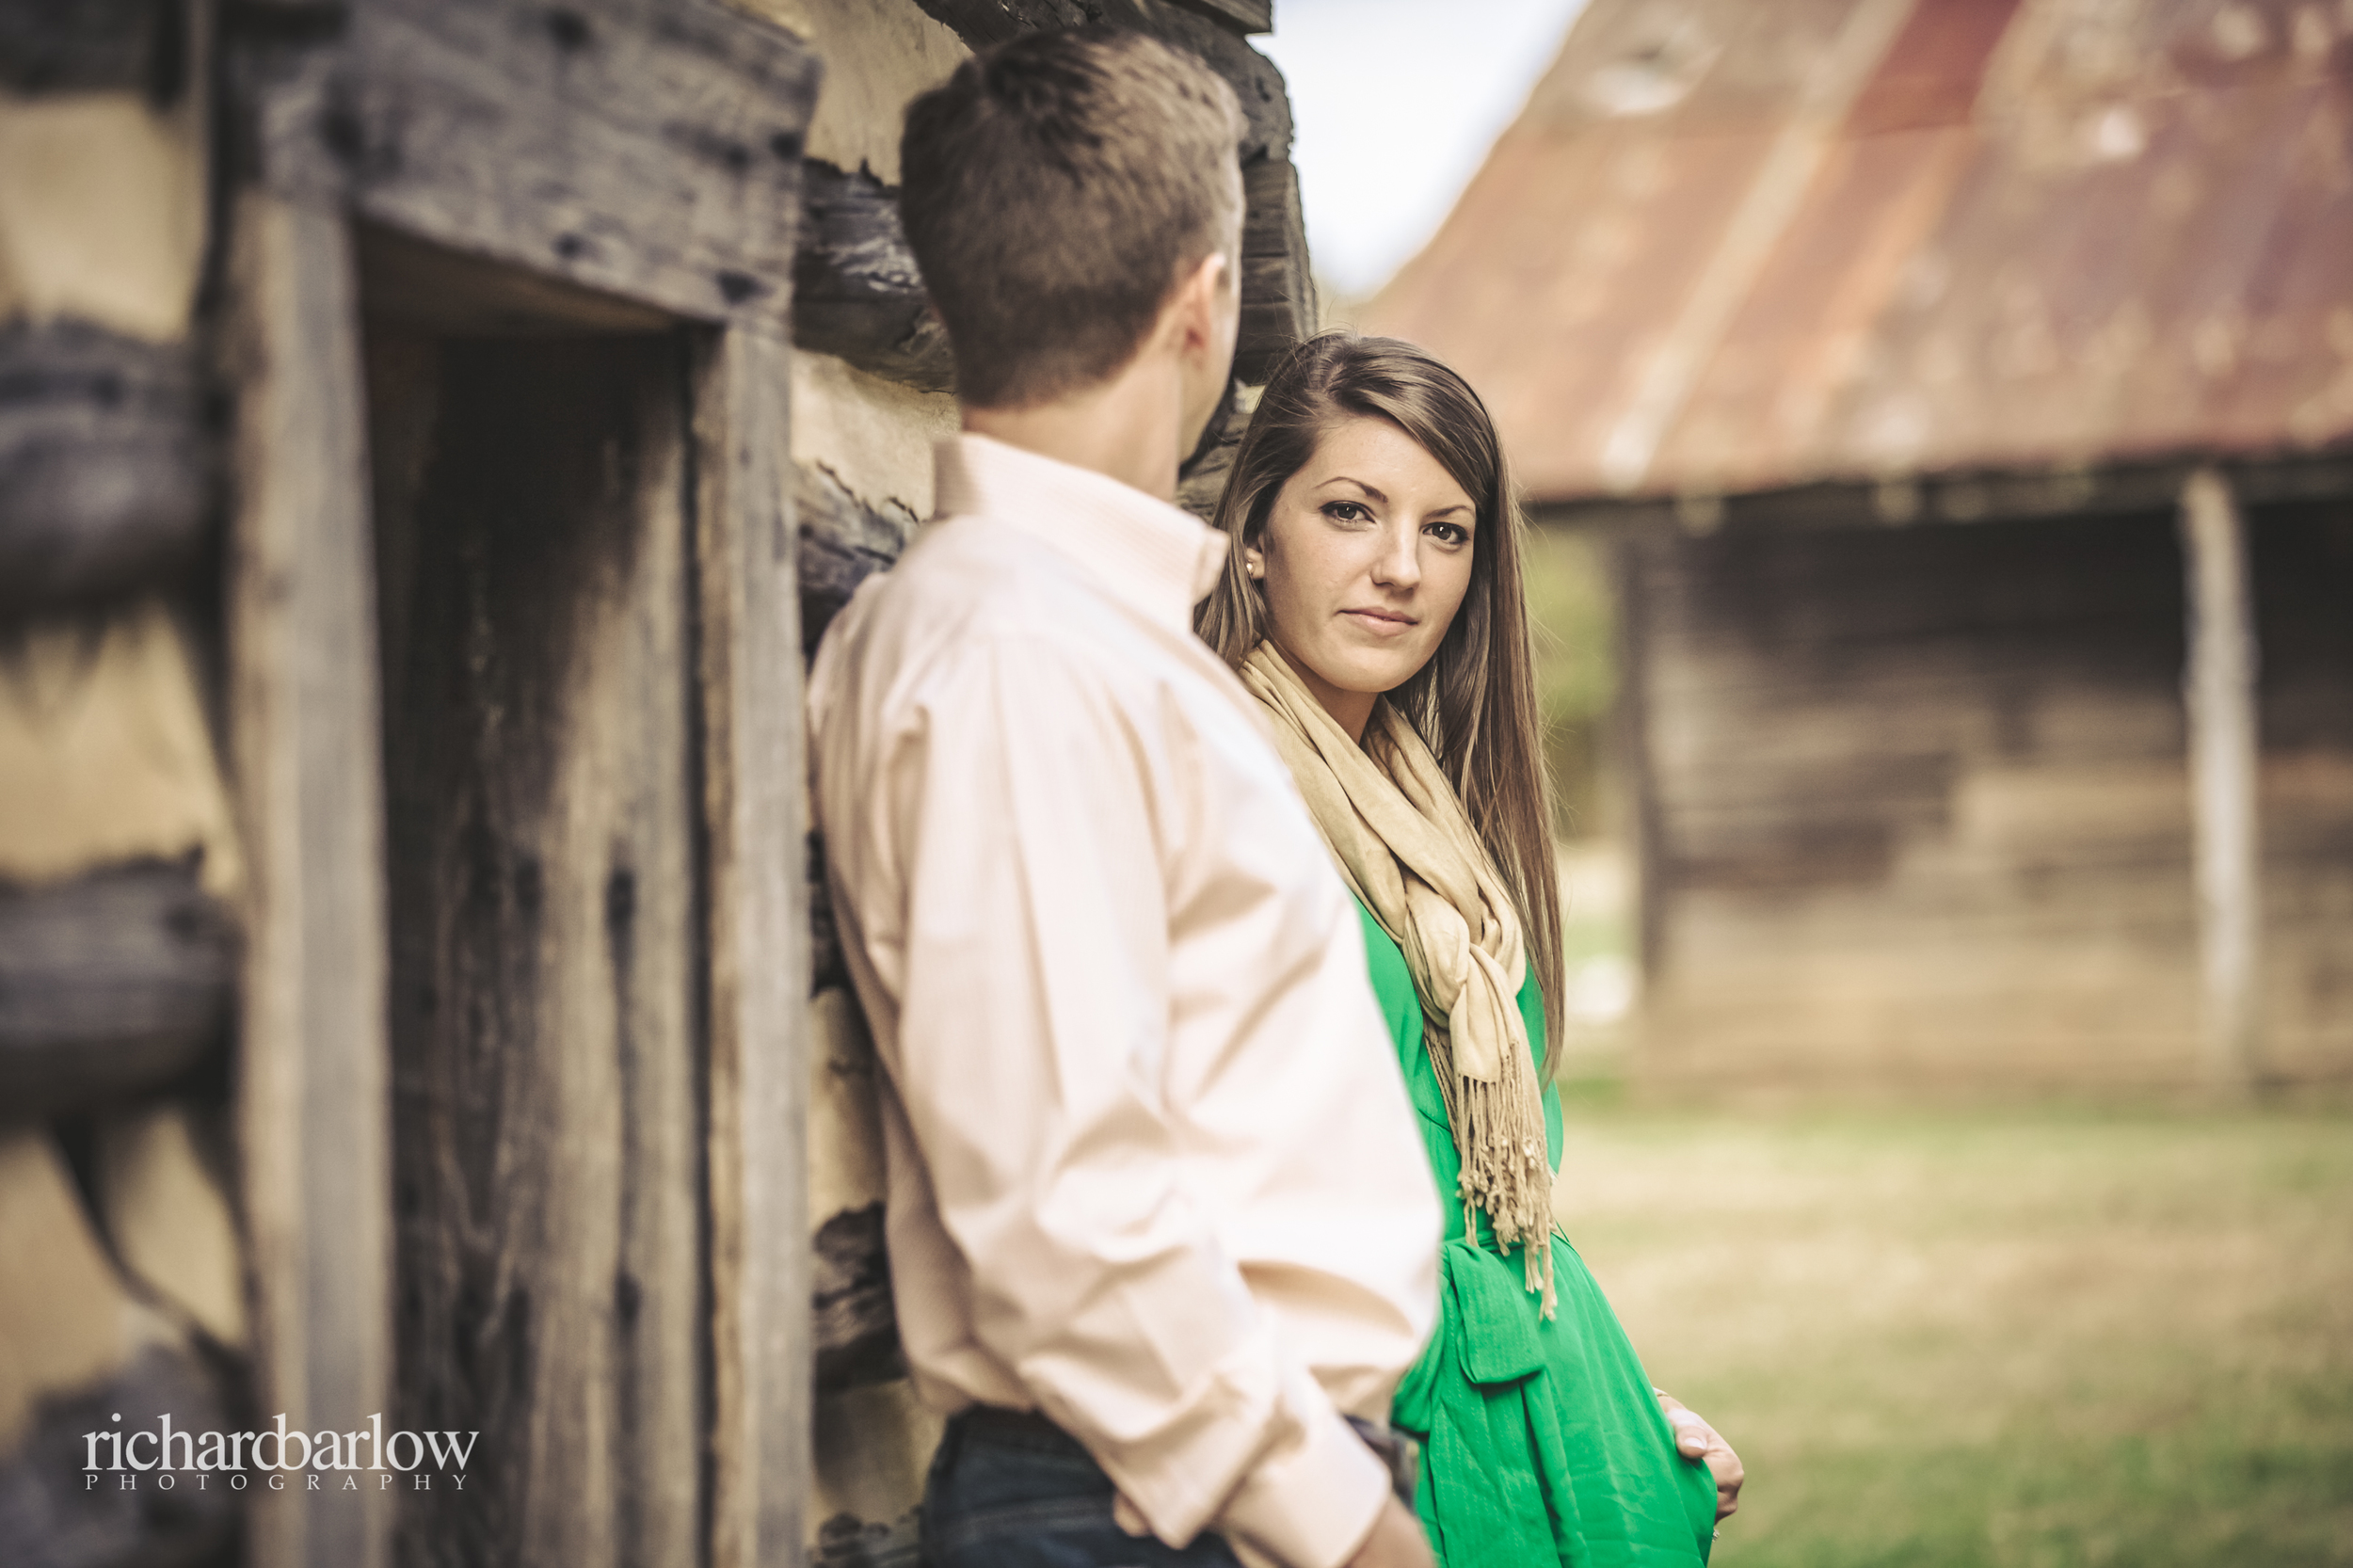 richard barlow photography - Graham and Lauren Engagement Session Wake Forest-9.jpg